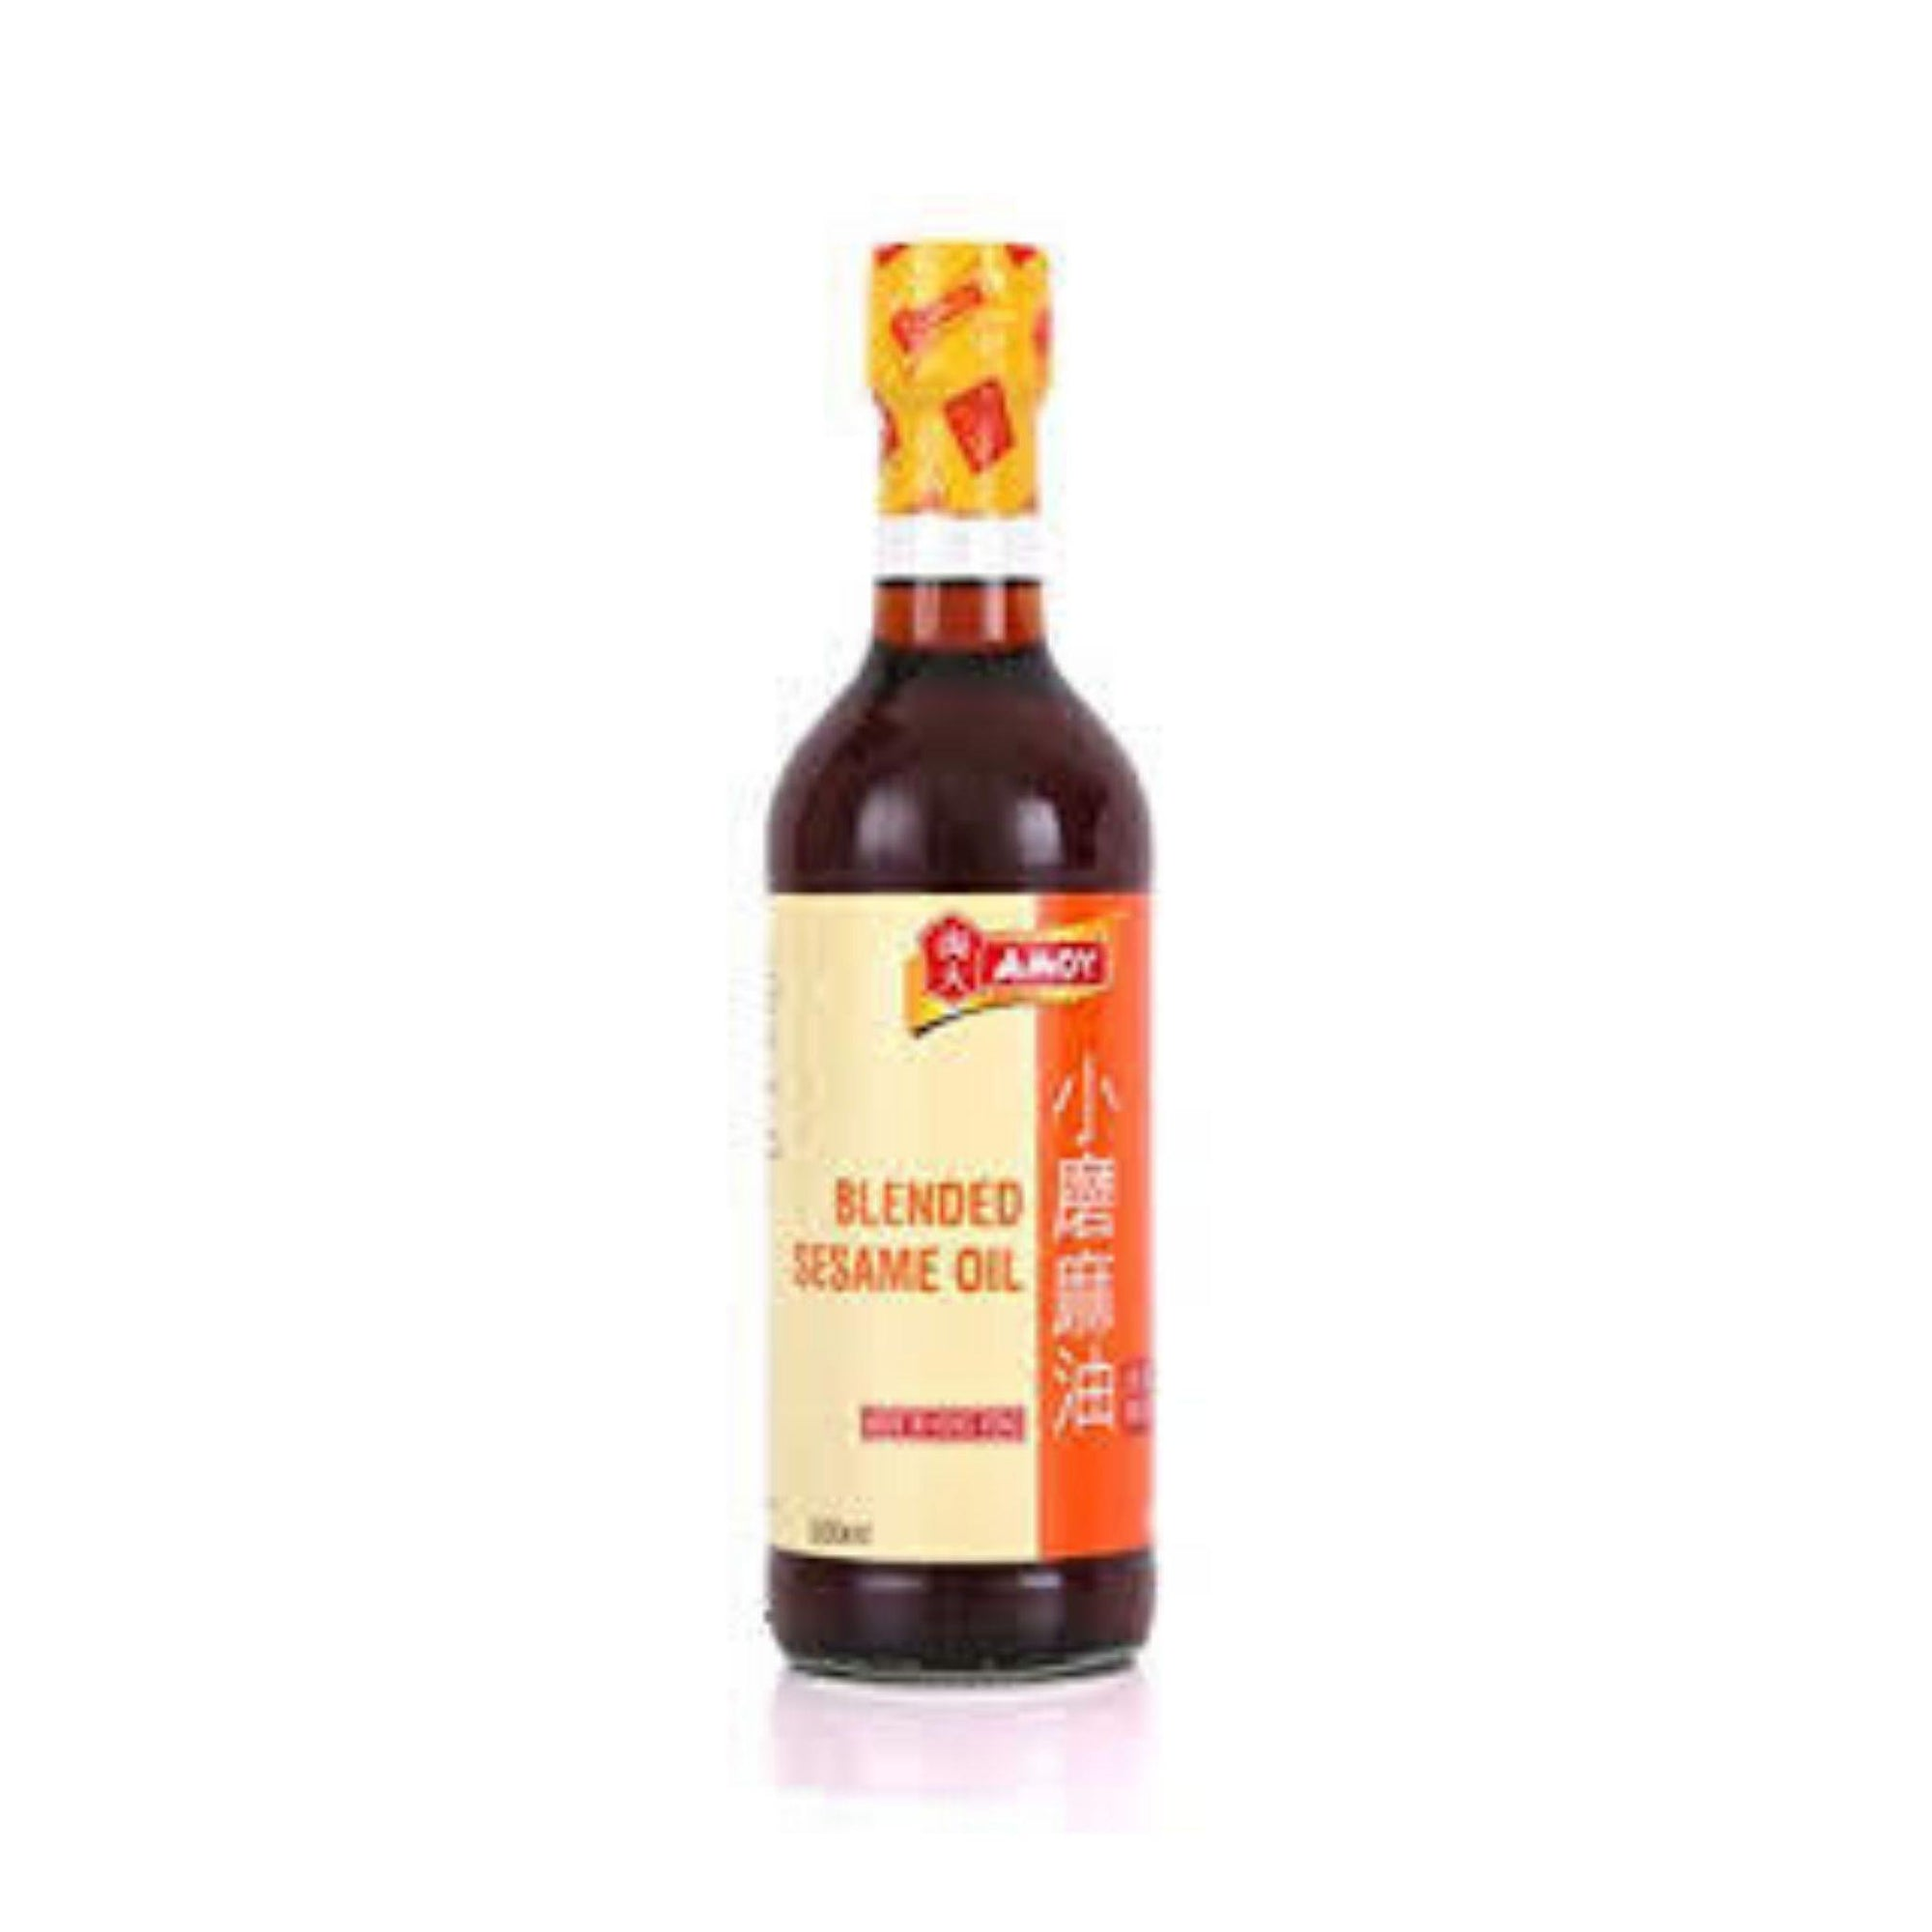 Amoy Blended Sesame Oil 500ml - Asian Harvest